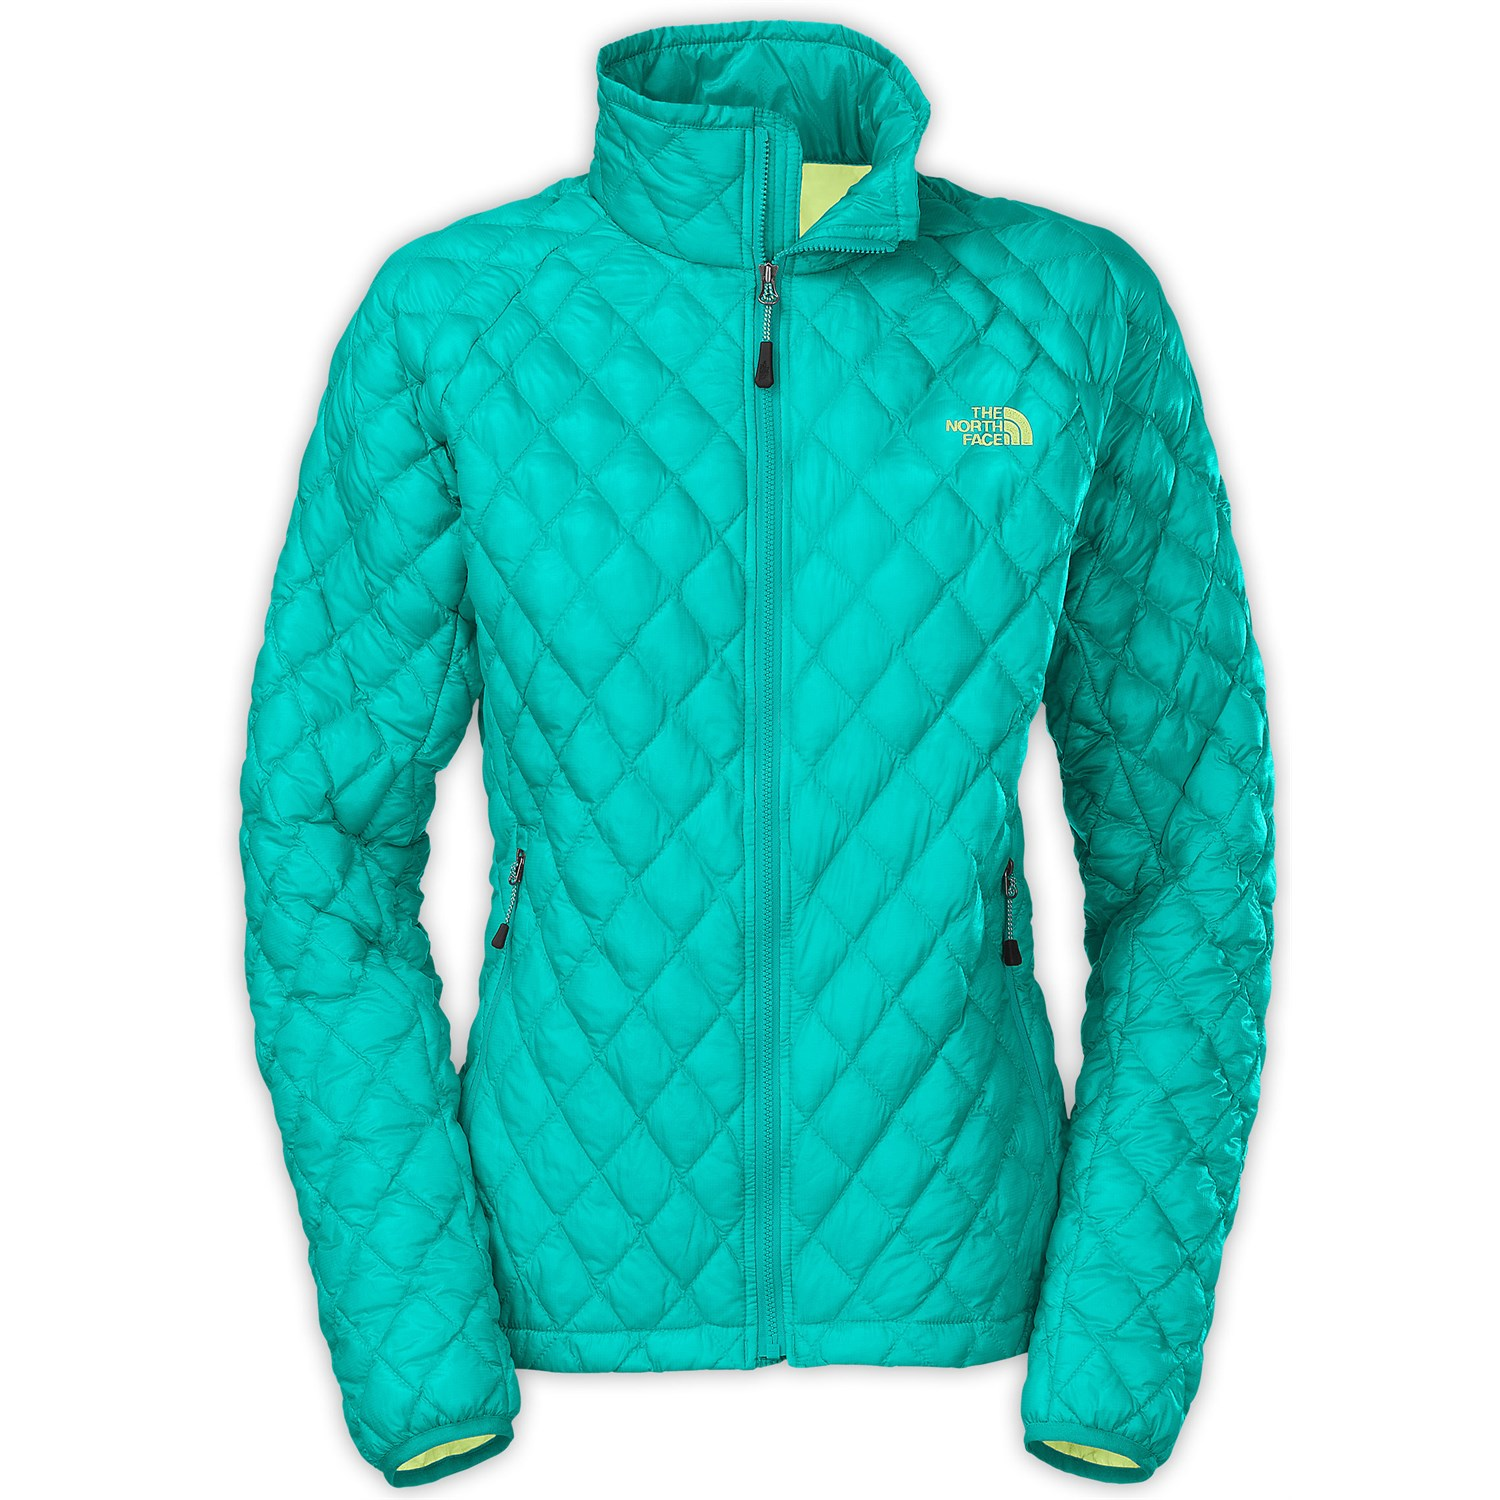 3e58d818e The North Face ThermoBall Full Zip Jacket - Women's | evo